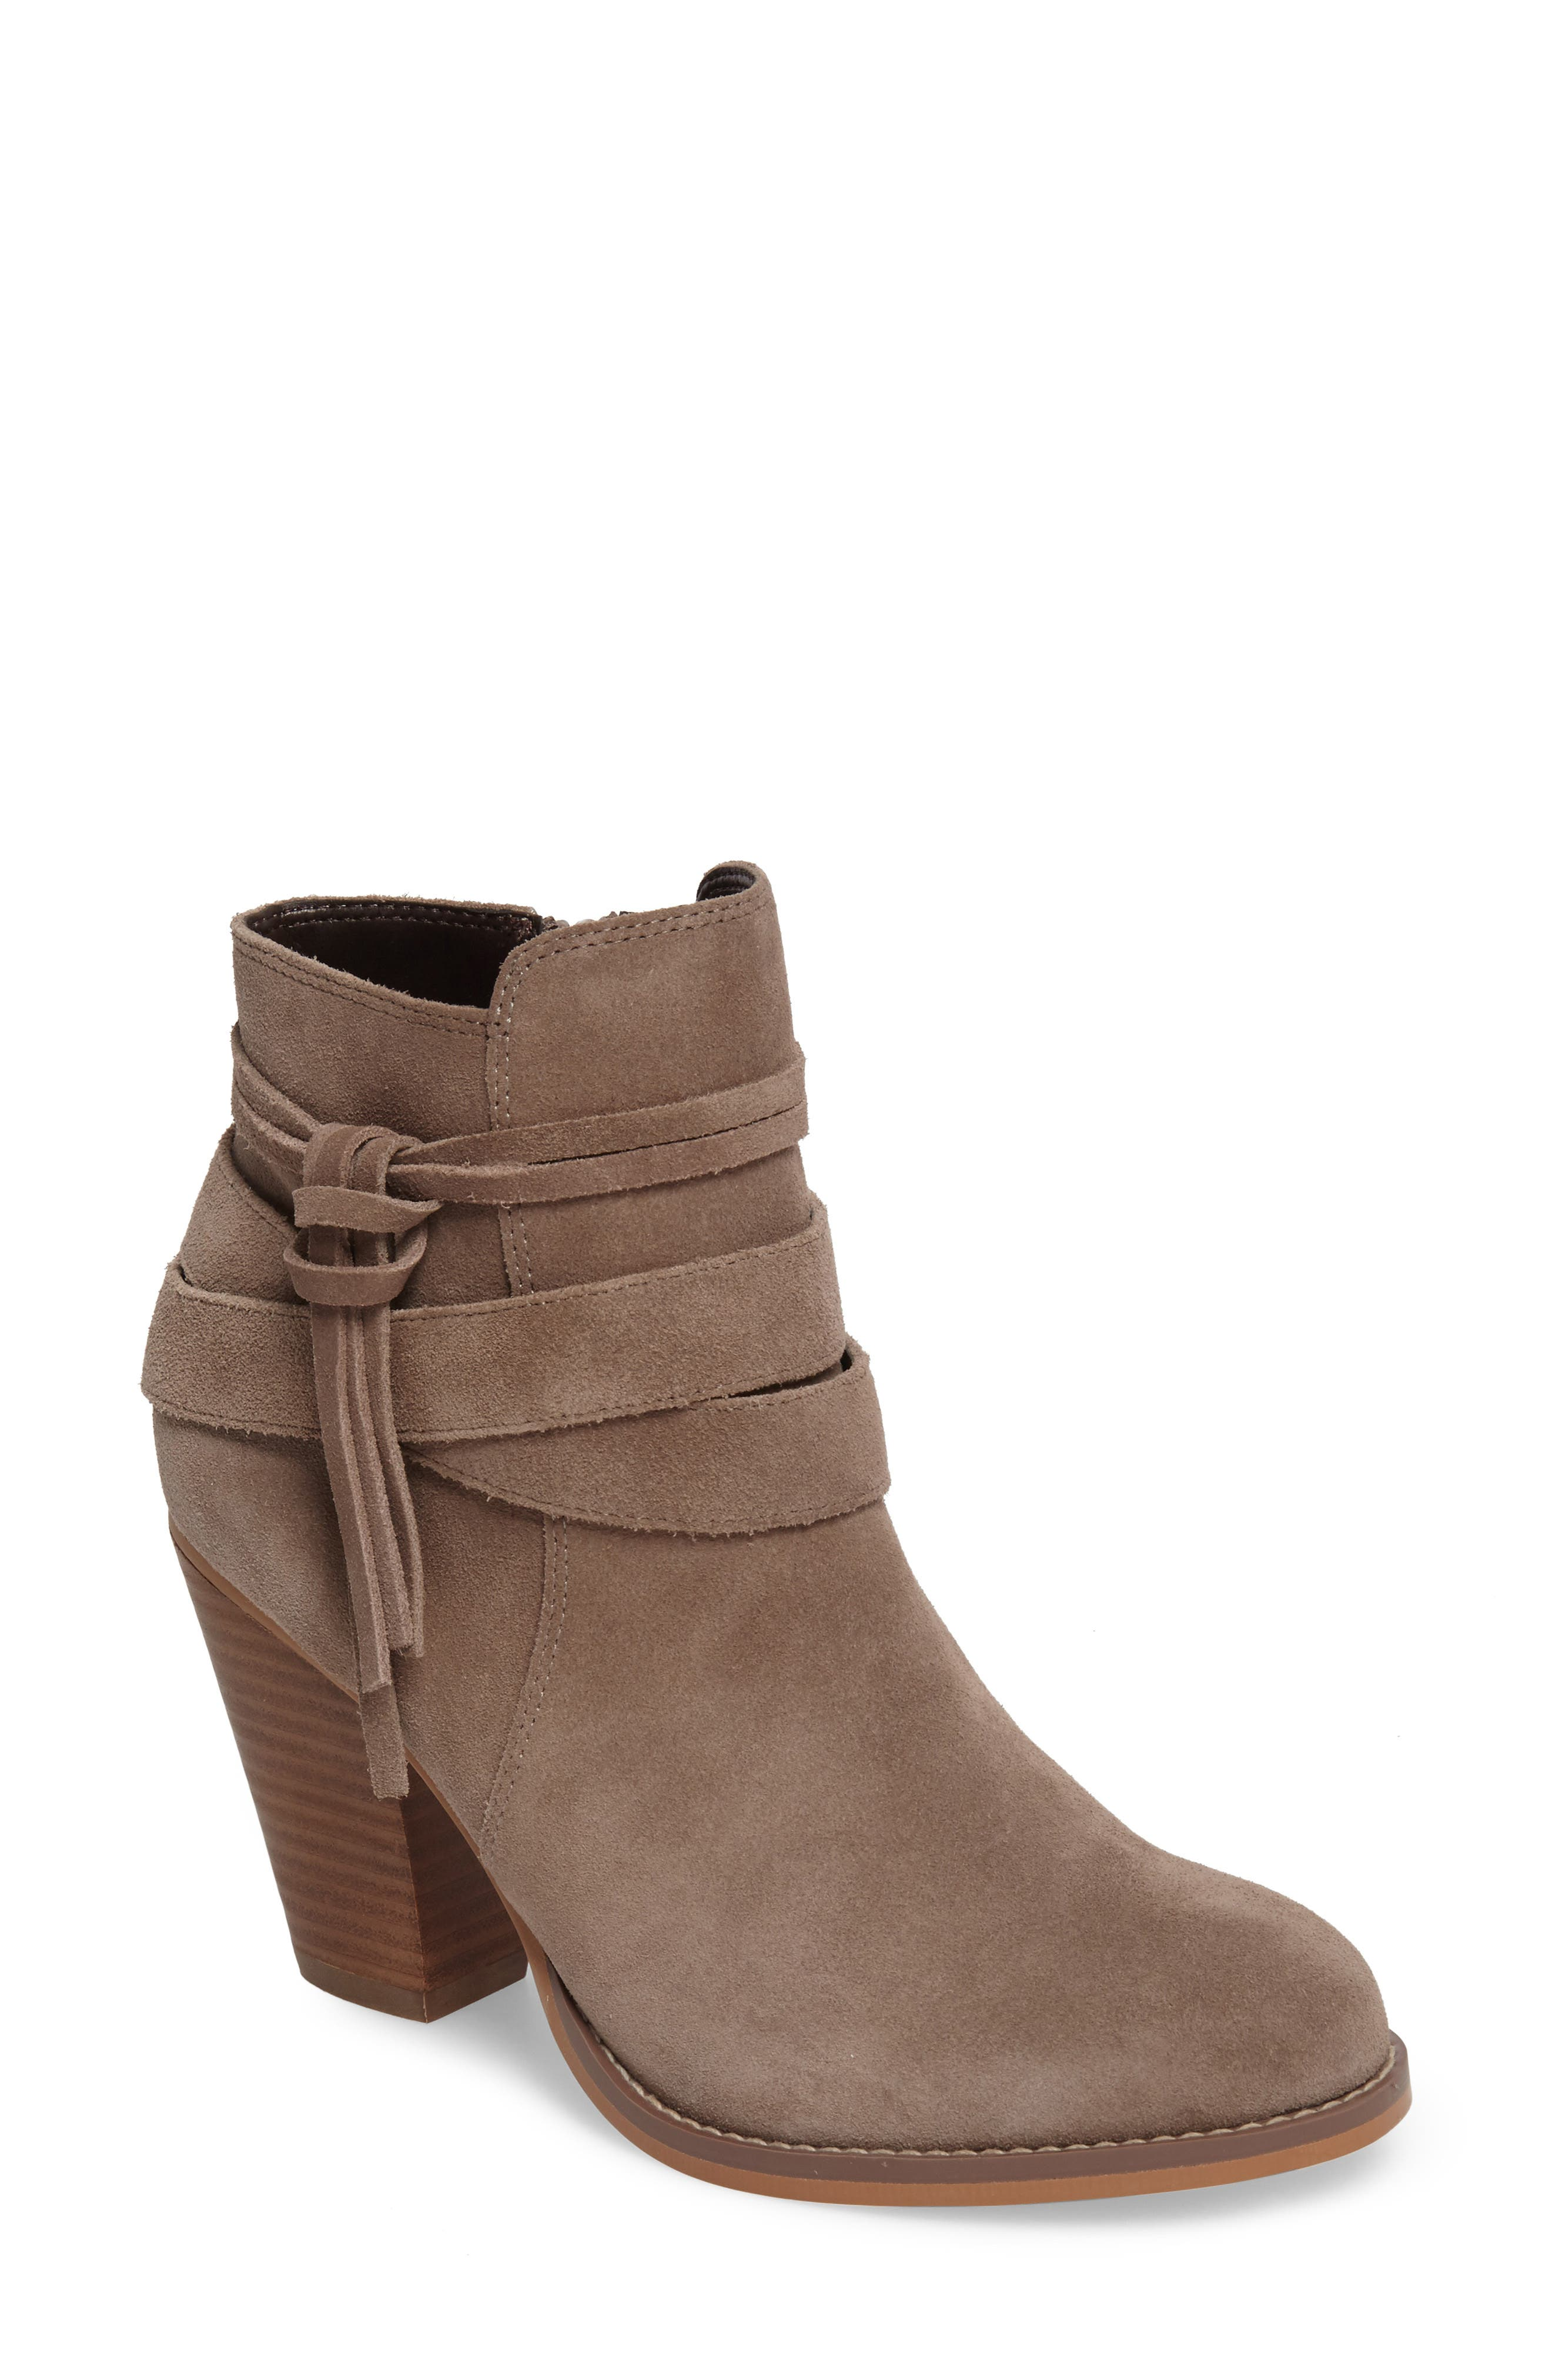 Alternate Image 1 Selected - Sole Society Rumi Bootie (Women)